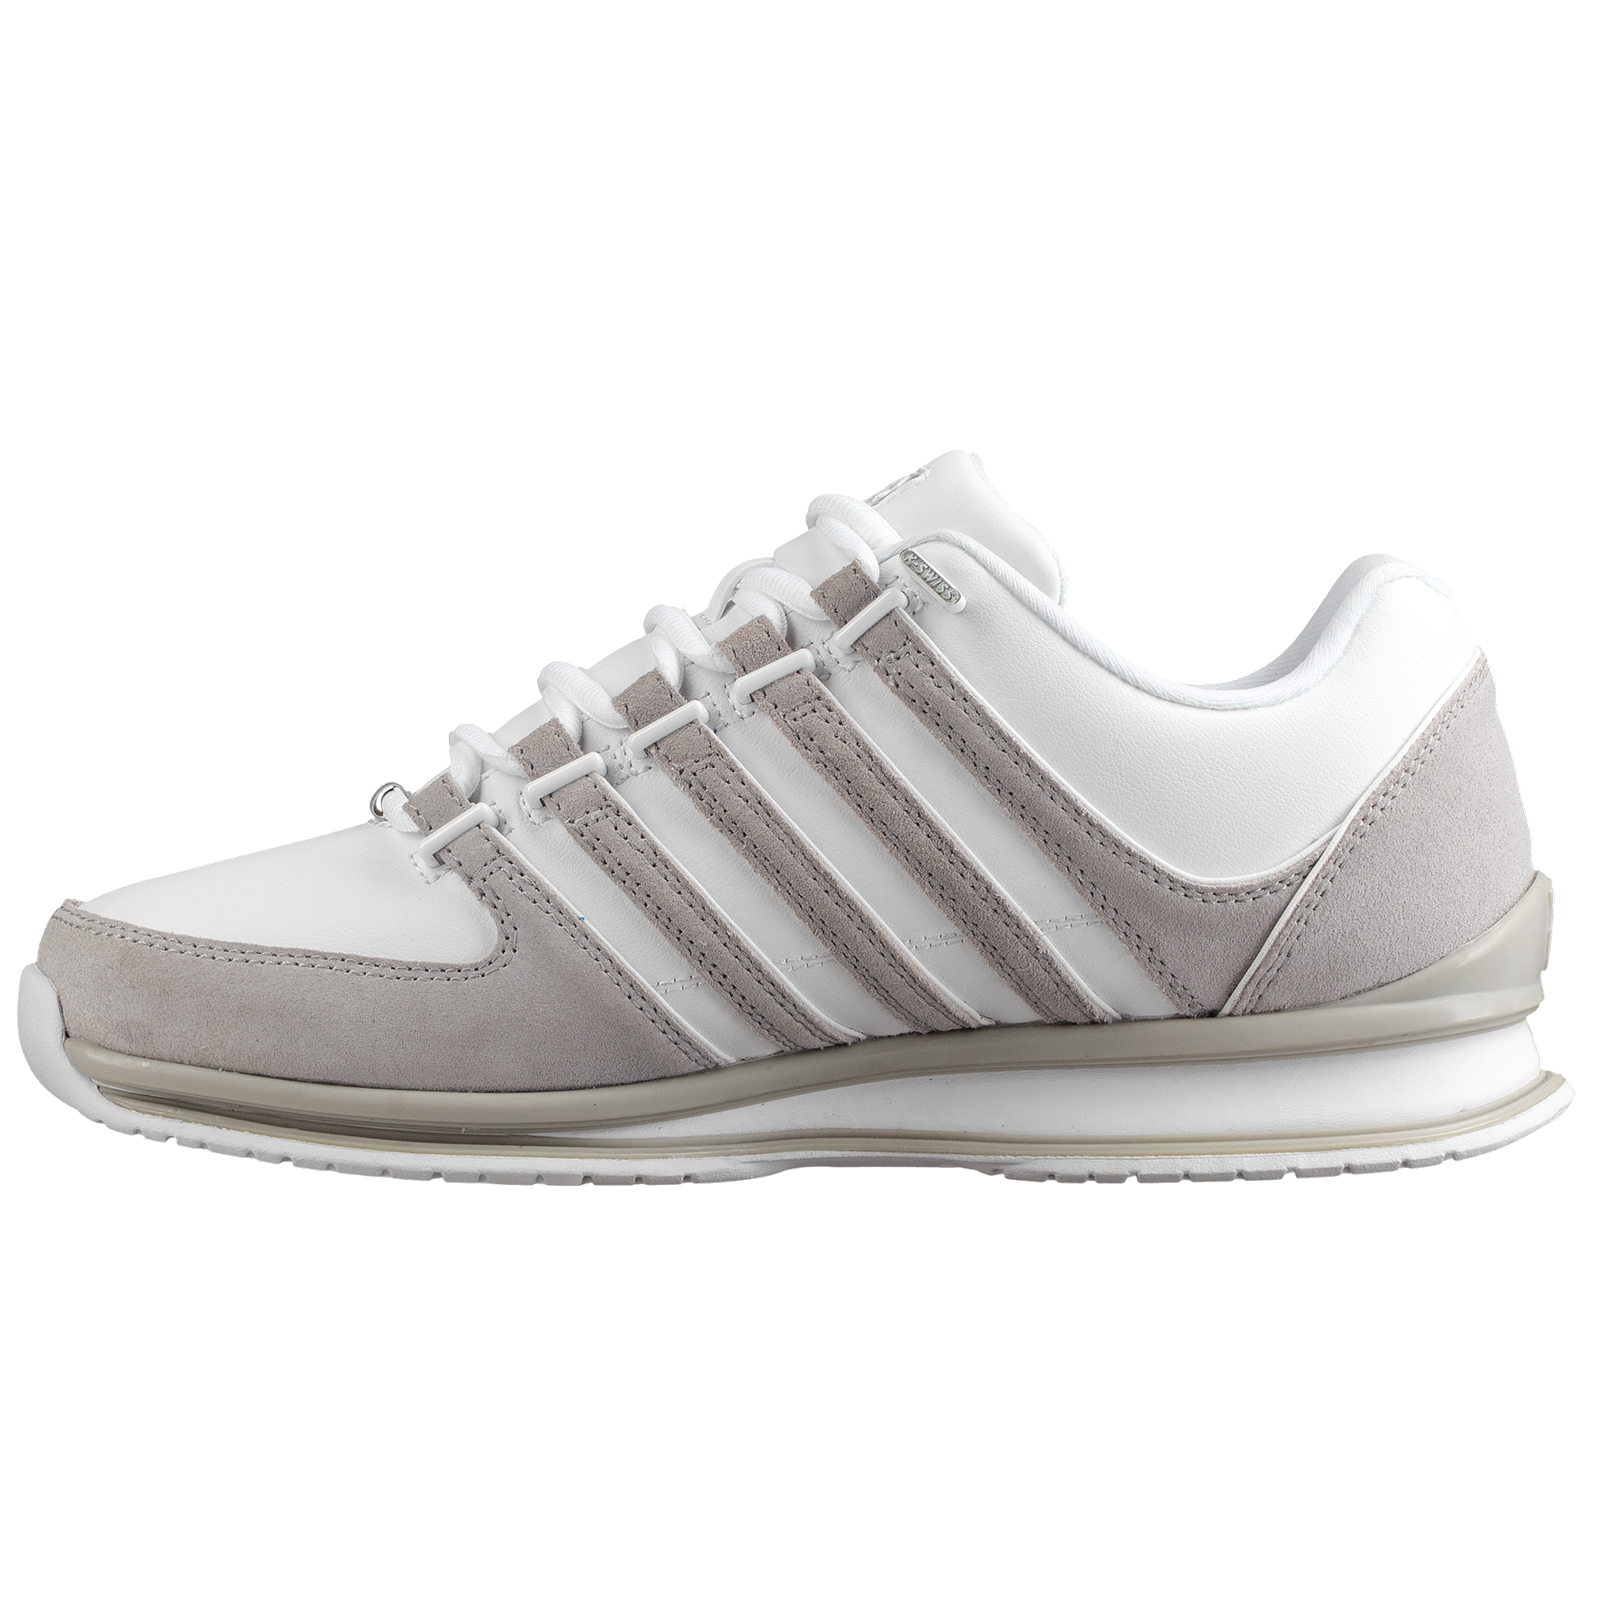 Fashion Grey Rinzler Gull Trainer Sneaker Sp Shoes swiss Iconic White K Mens Edition Limited qxF7O87wE